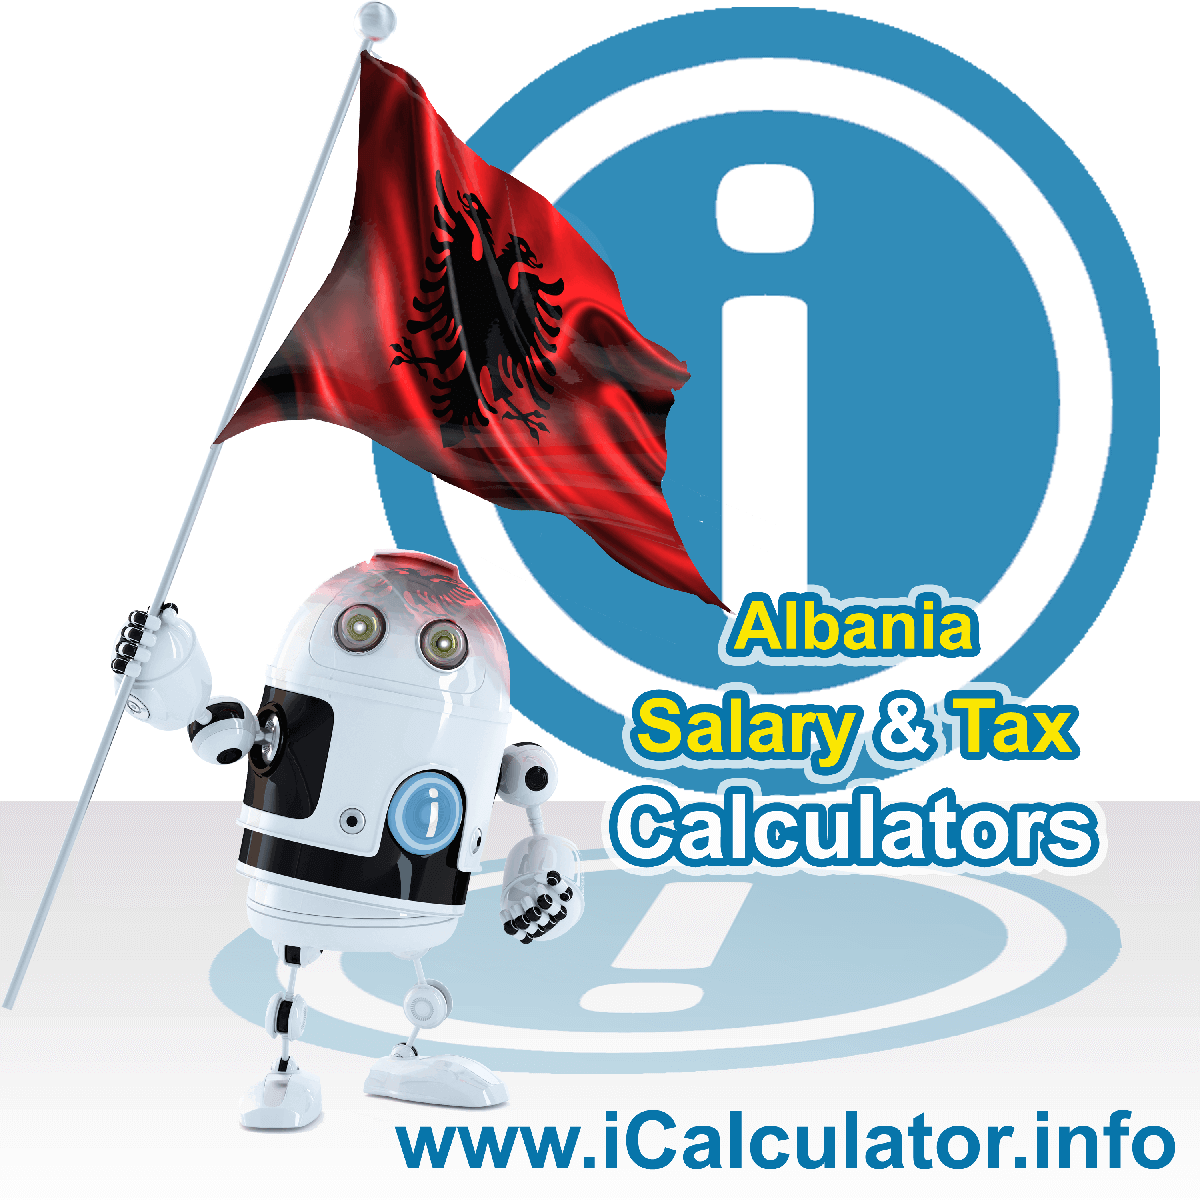 Albania Wage Calculator. This image shows the Albania flag and information relating to the tax formula for the Albania Tax Calculator